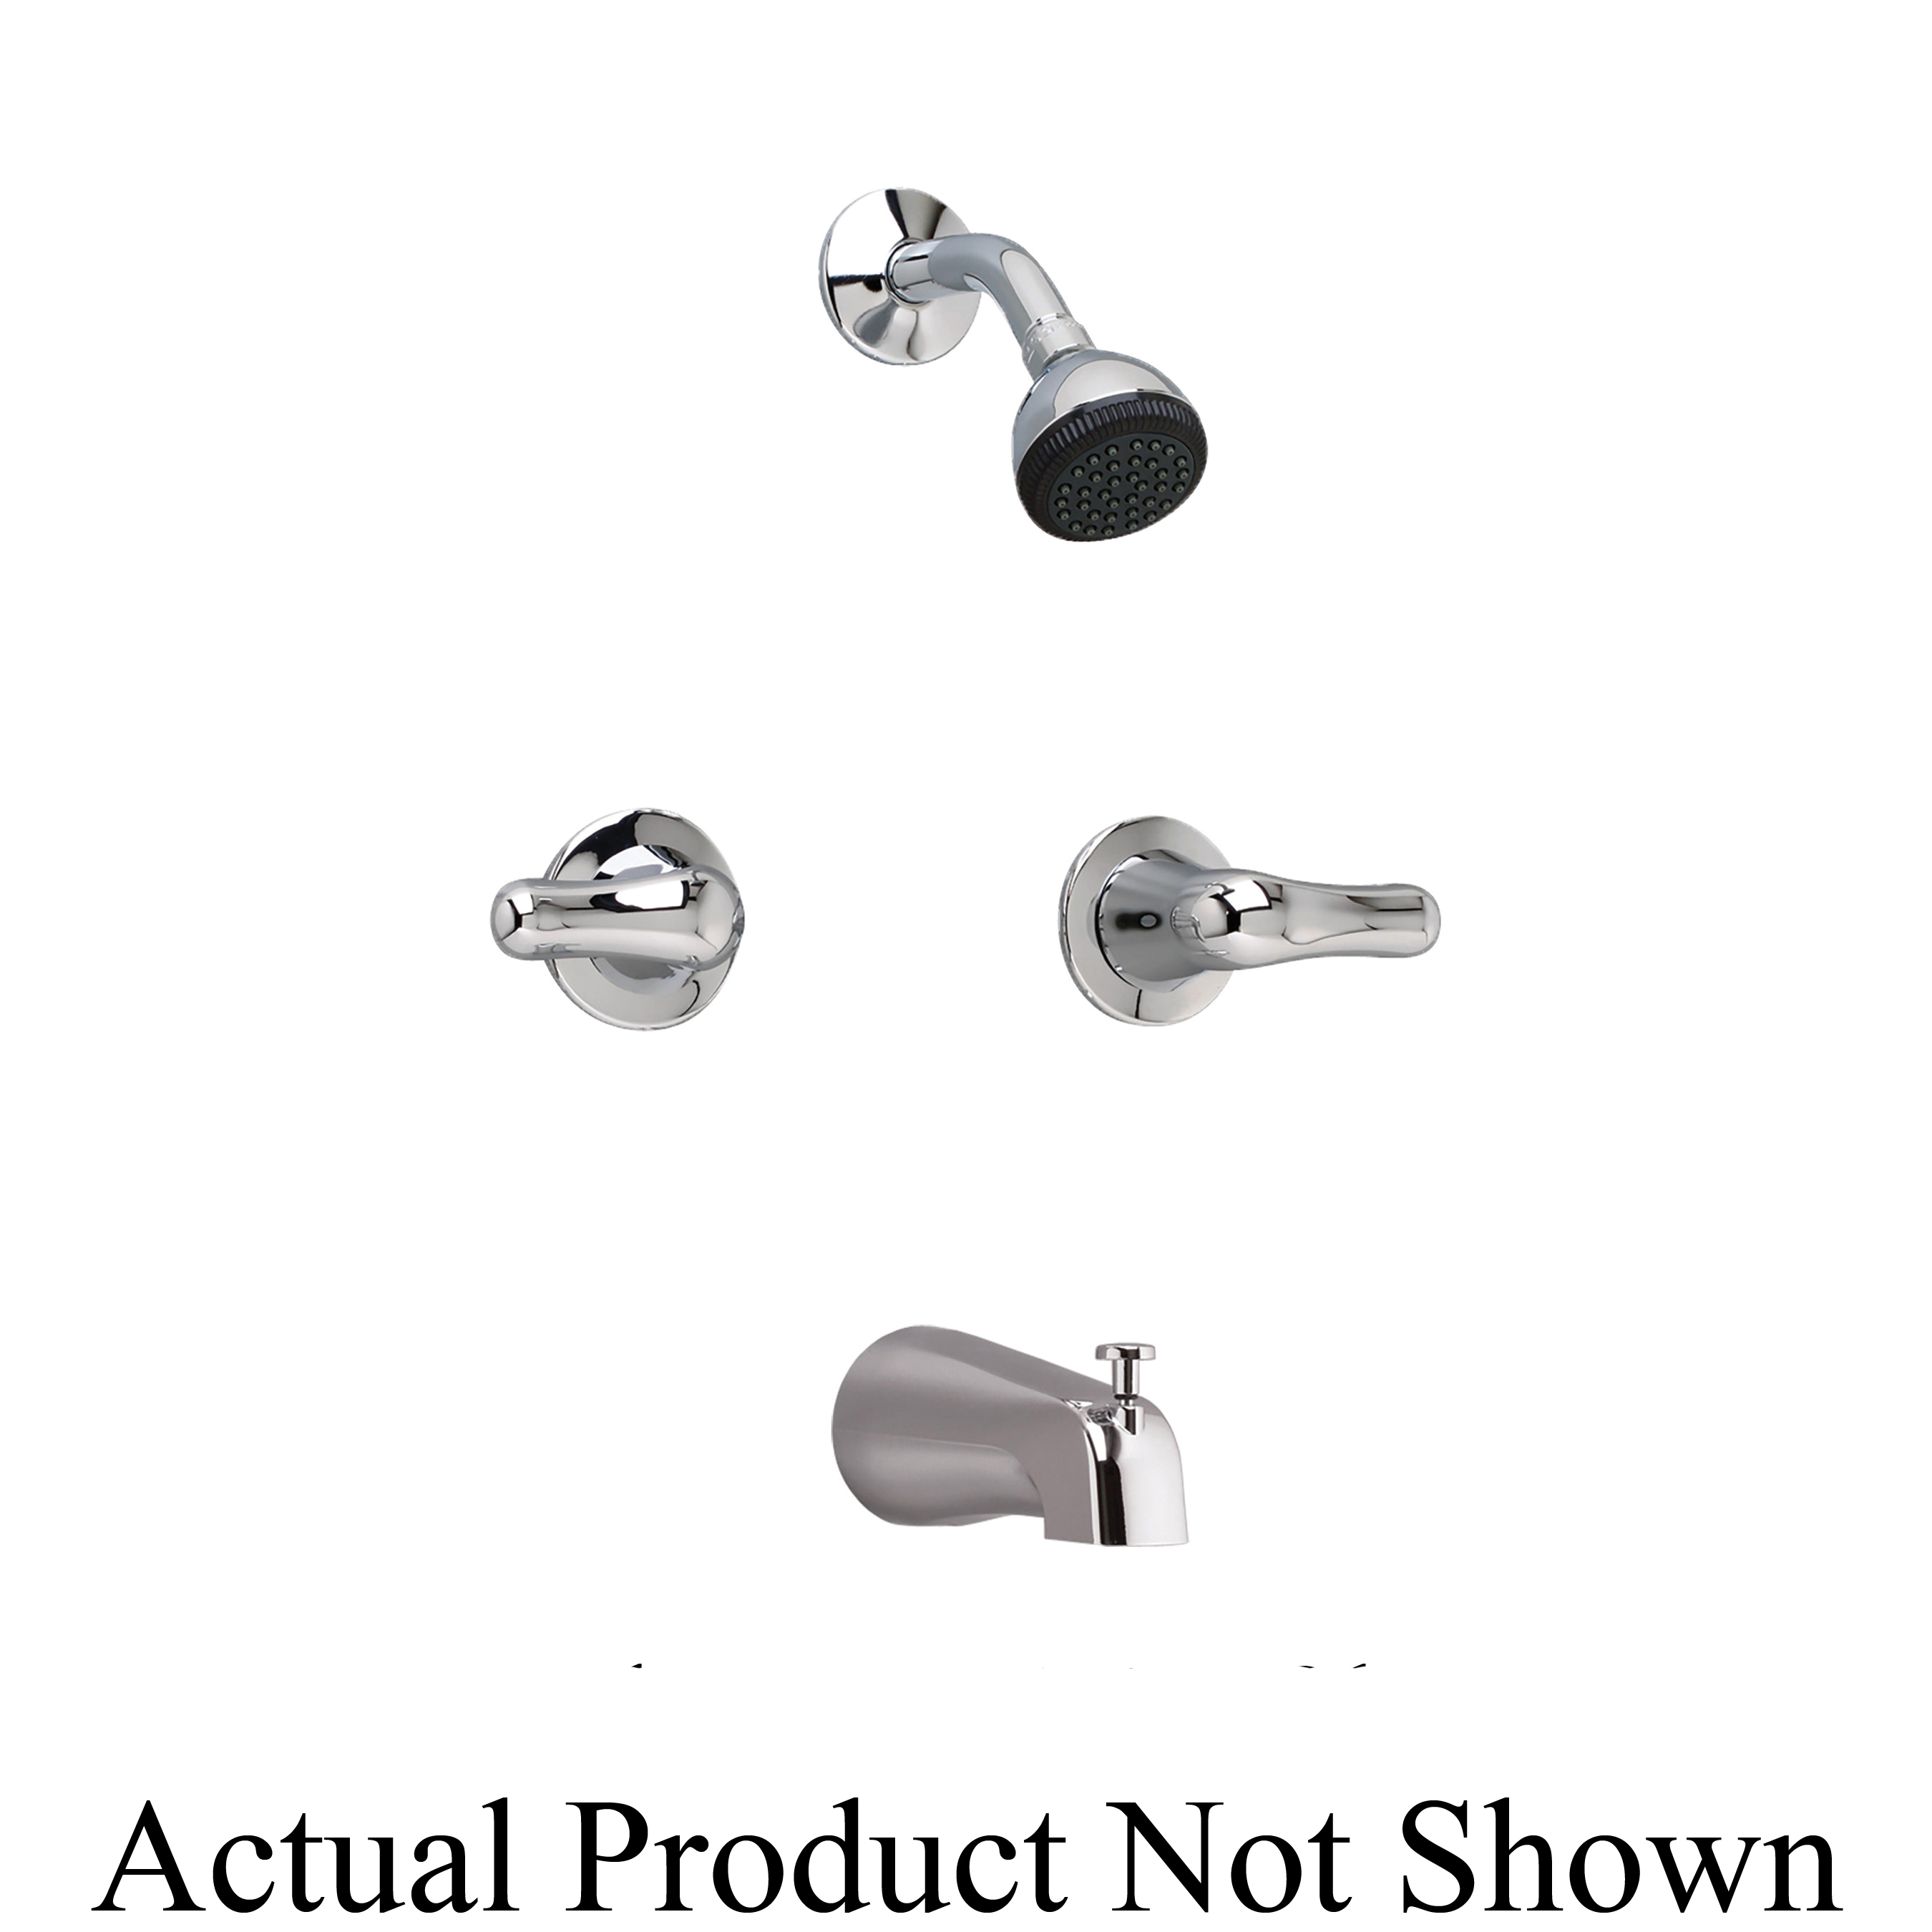 American Standard 3275.505.002 Colony® Soft Tub Filler, 17 gpm Flow Rate, 8 in Center, Polished Chrome, 2 Handles, Domestic